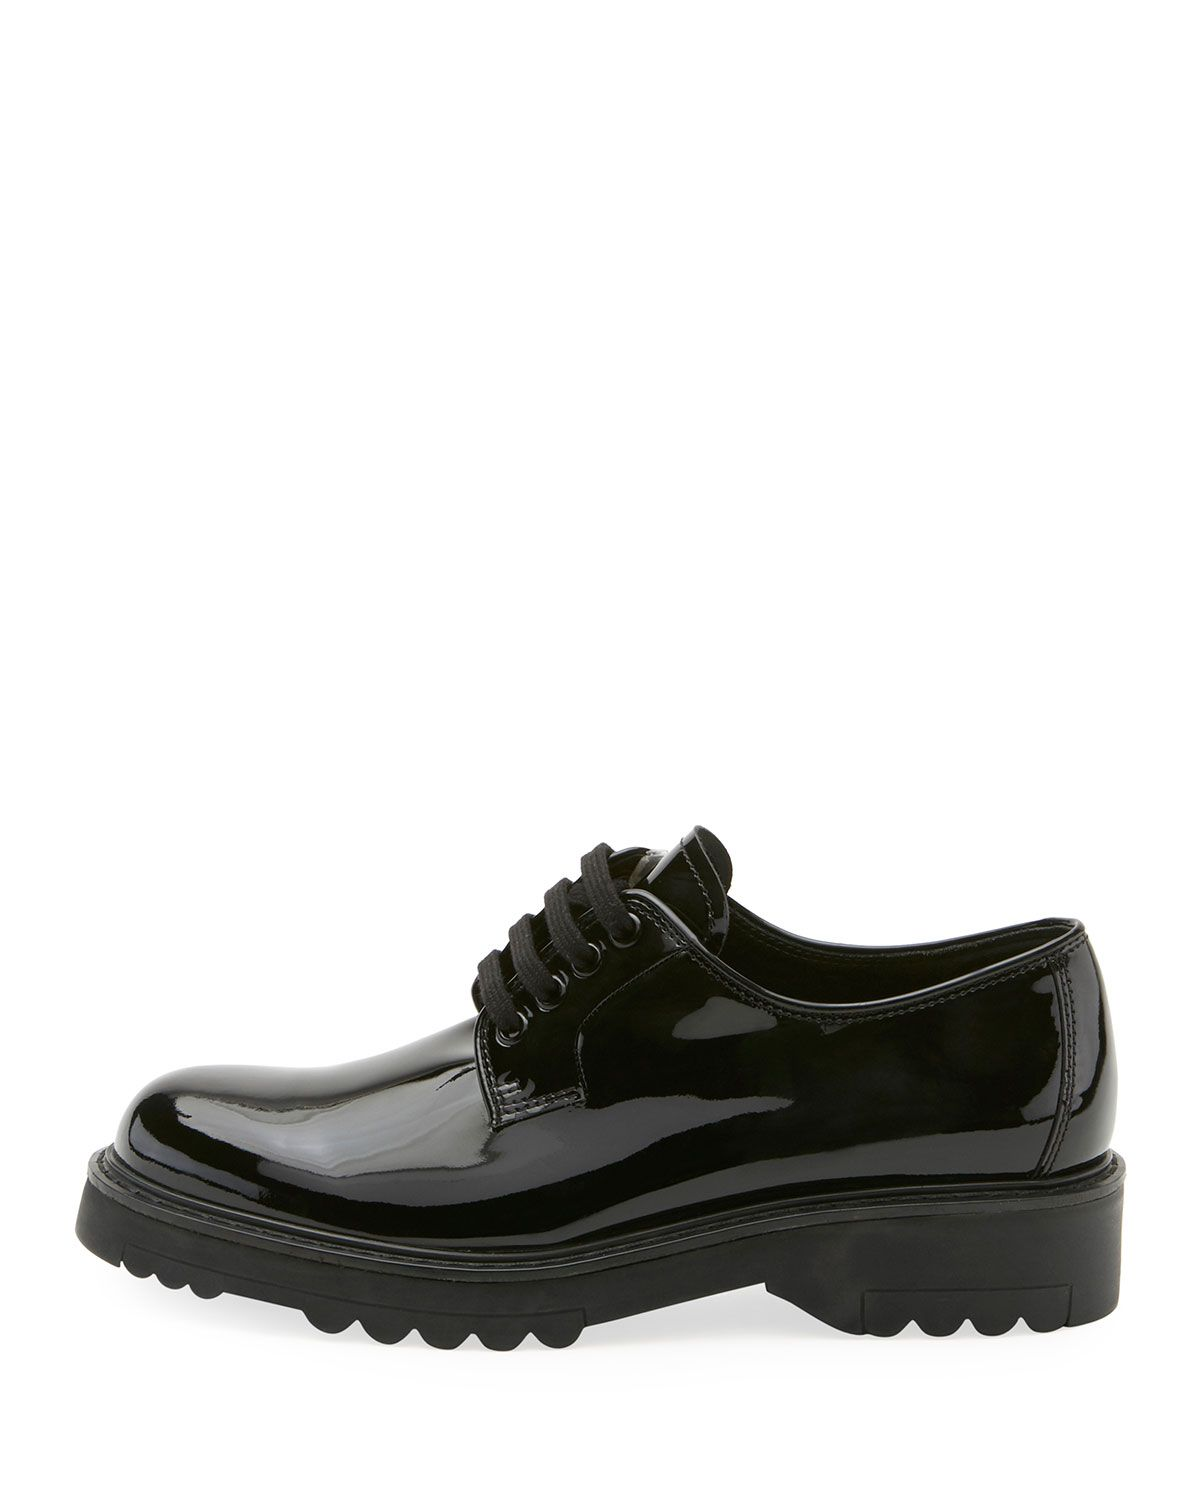 1687c6d12b Prada Patent Lace-Up Platform Oxford | Products | Oxford platform ...